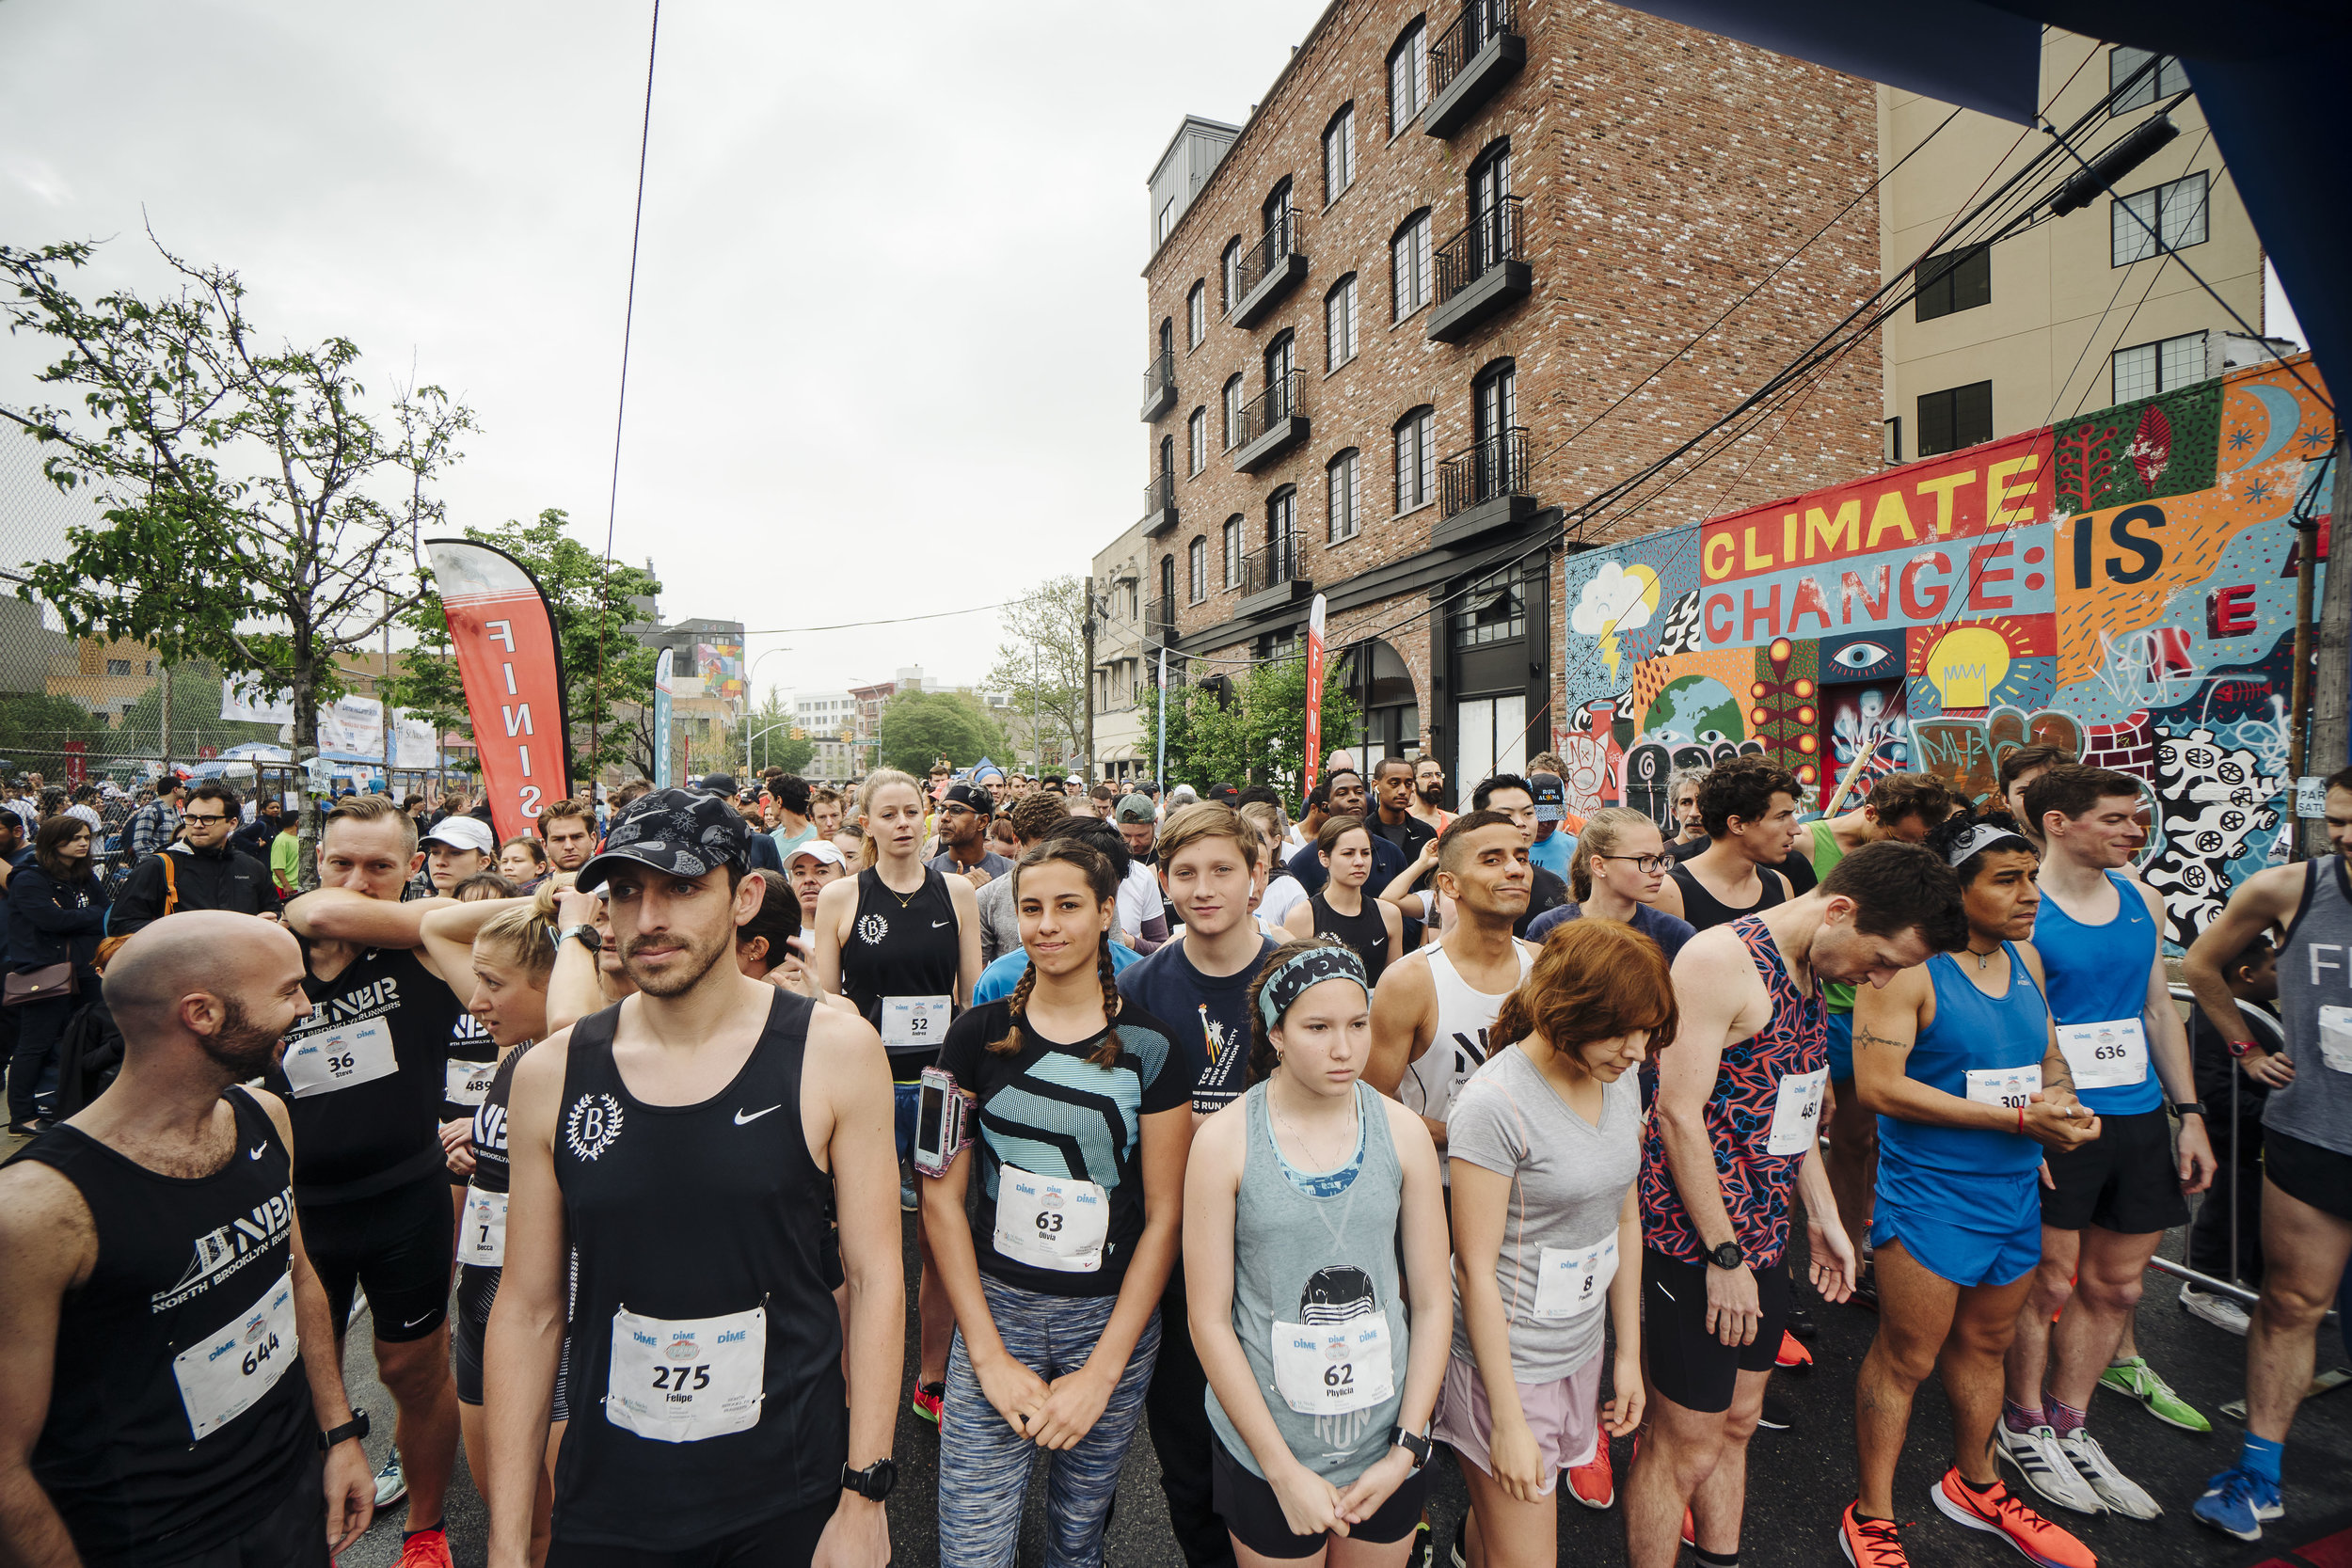 McCarren 5k and 10k run, St Nick's Alliance. Williamsburg, Brooklyn NY MAy 4 2019 - photo by Stefano Giovannini